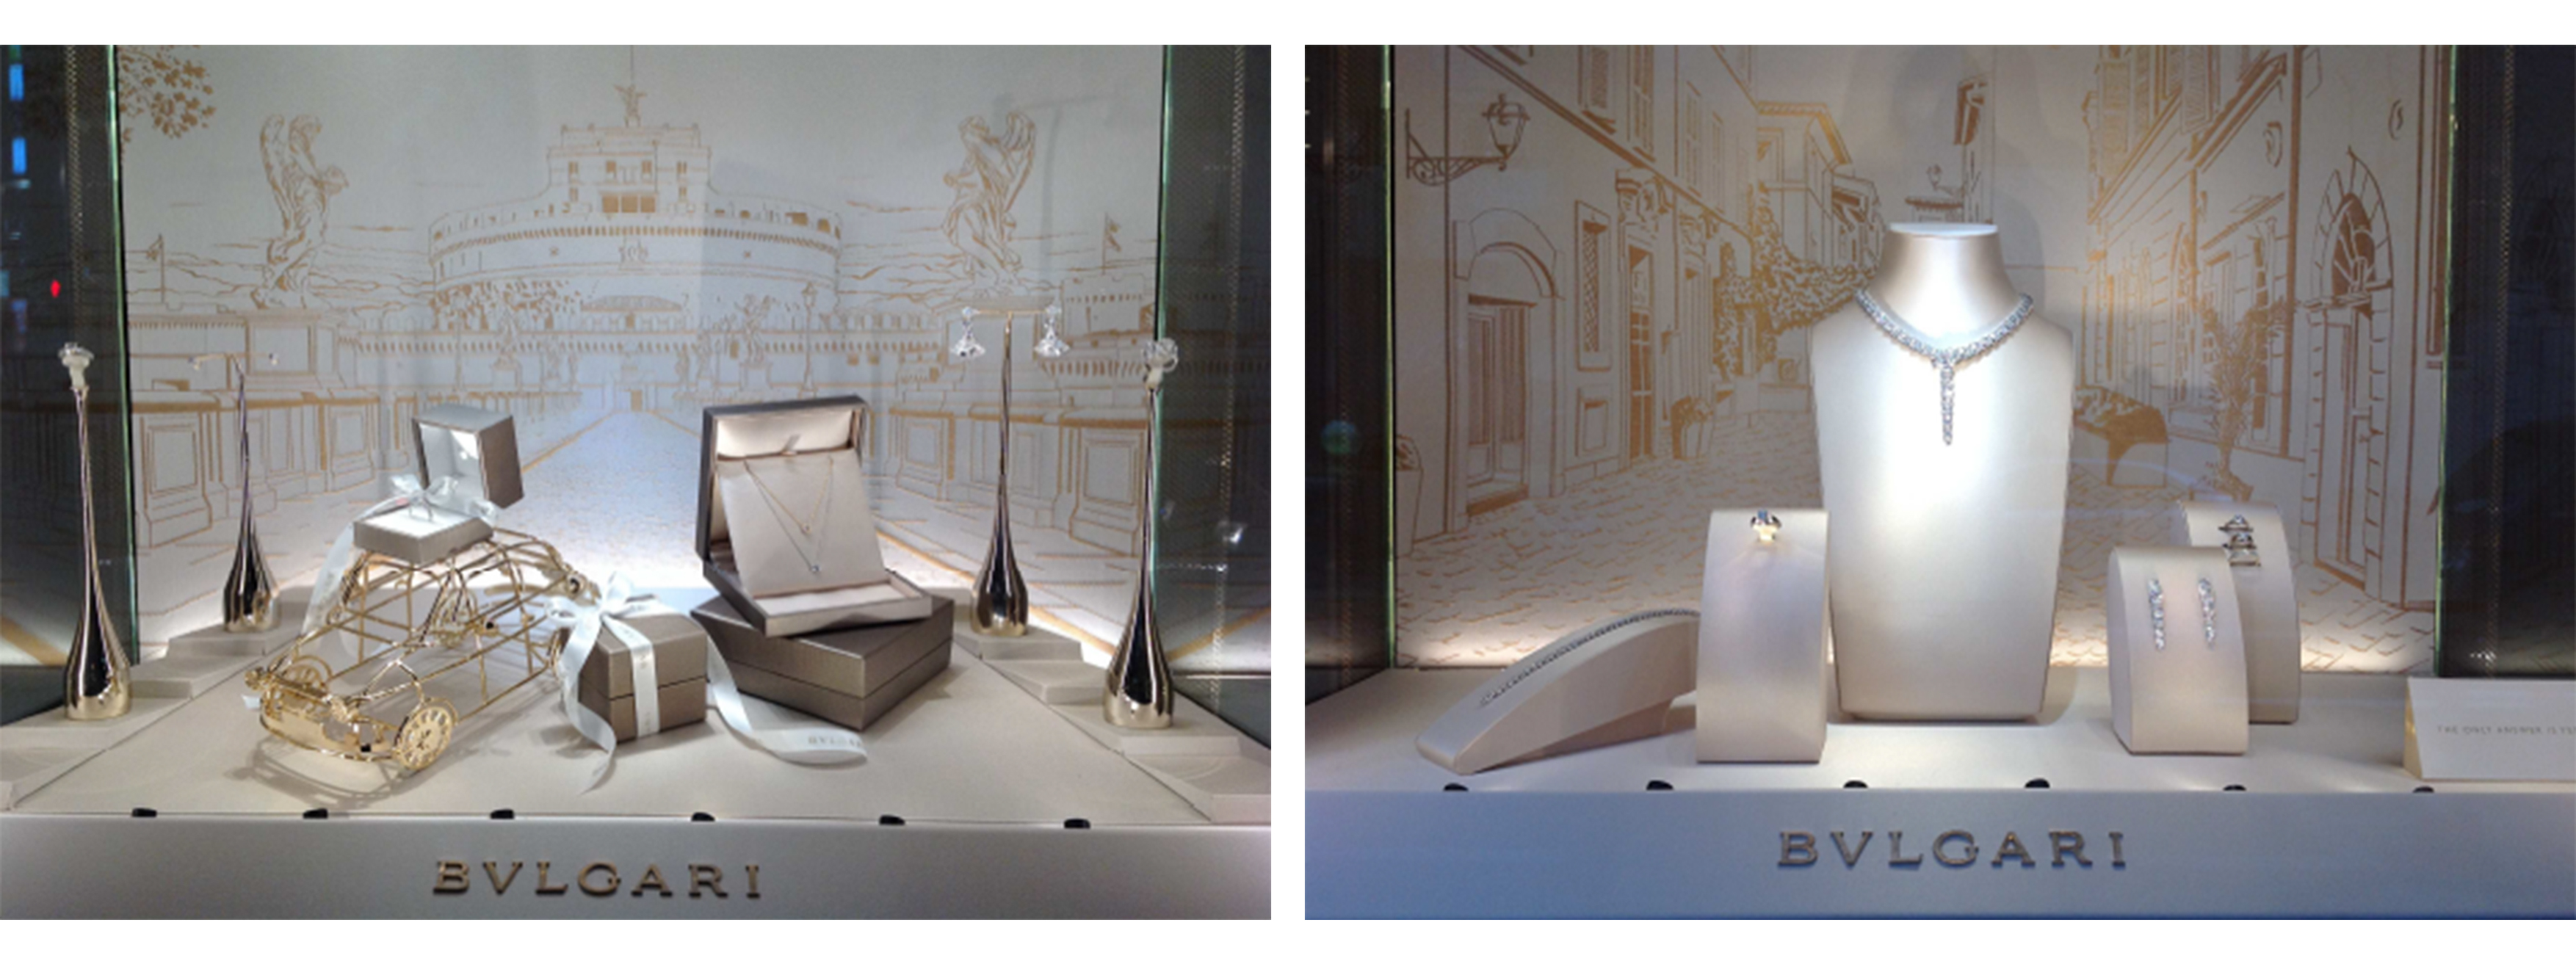 Bulgari Bridal Asia, Windows Installation by Emiliano Ponzi 6